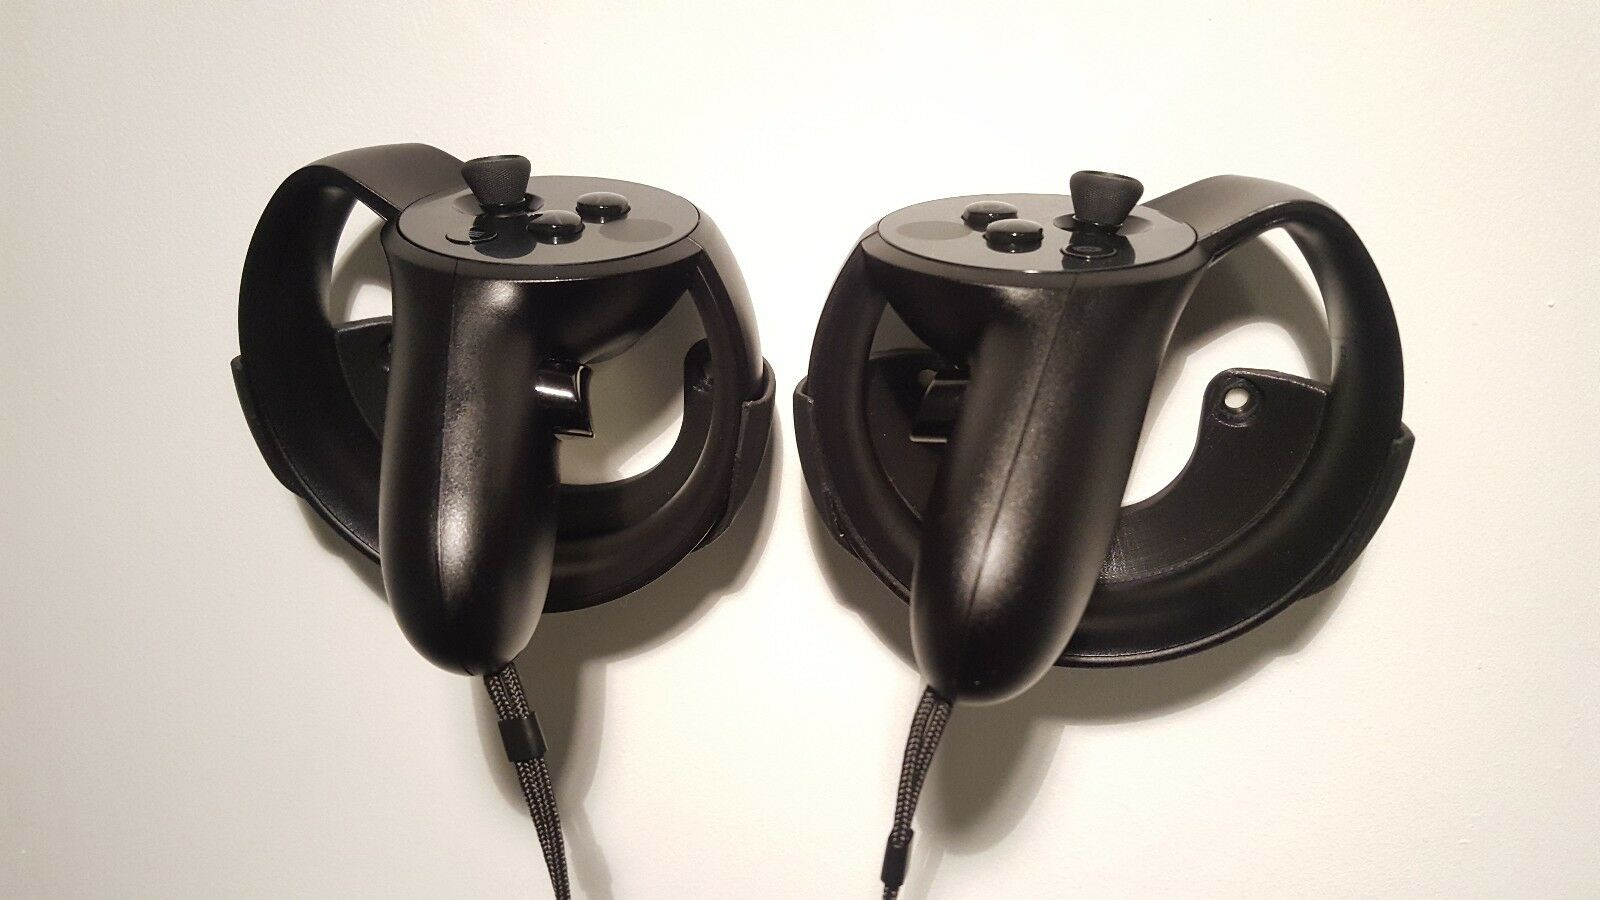 Wall Mounts for Oculus Rift Touch Controller (md) (oculus Touch) Cv1   eBay 74940cdece